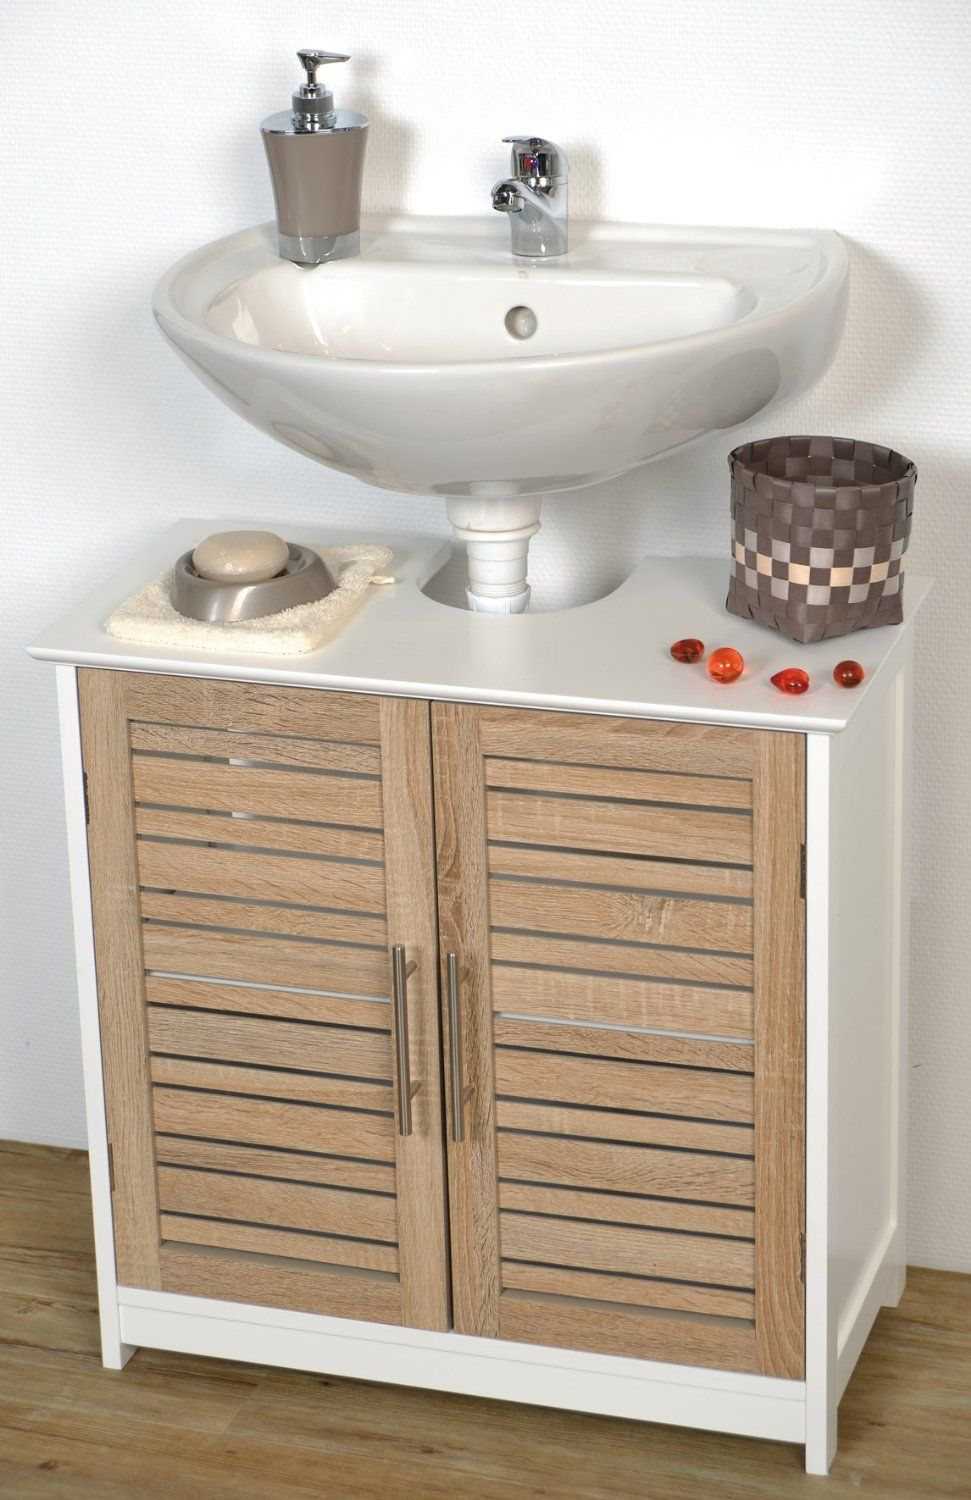 Bath vanity cabinet stockholm brown bamboo - Bathroom vanity under sink organizer ...